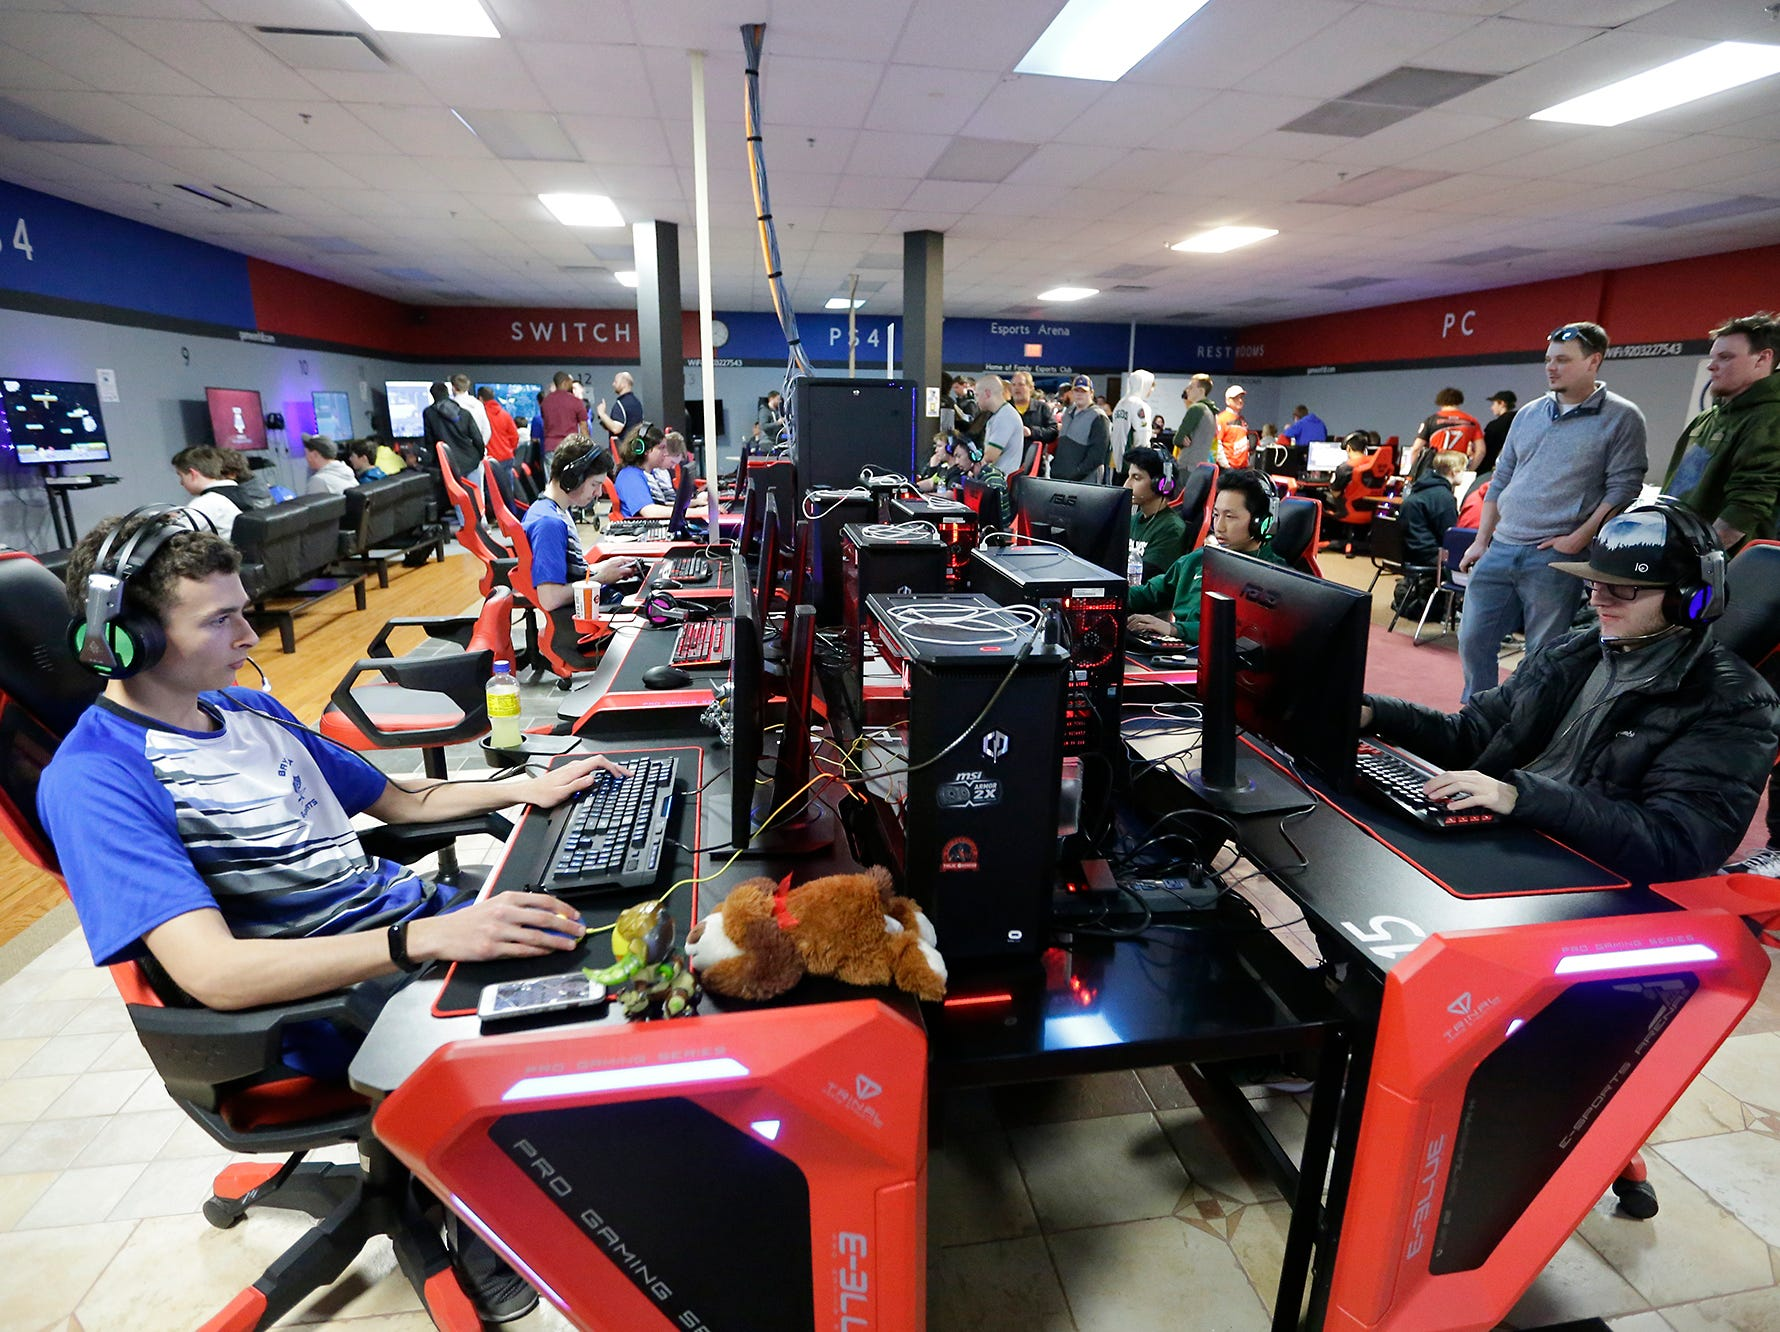 Students from dozens of schools throughout Wisconsin take part in the Wisconsin High School Esports Association's State Championship Saturday, April 13, 2019 at Game On in Fond du Lac Wisconsin. Teams compete in 4 games during the event. Overwatch, Rocket League, League of Legends, and Smash Ultimate. Doug Raflik/USA TODAY NETWORK-Wisconsin